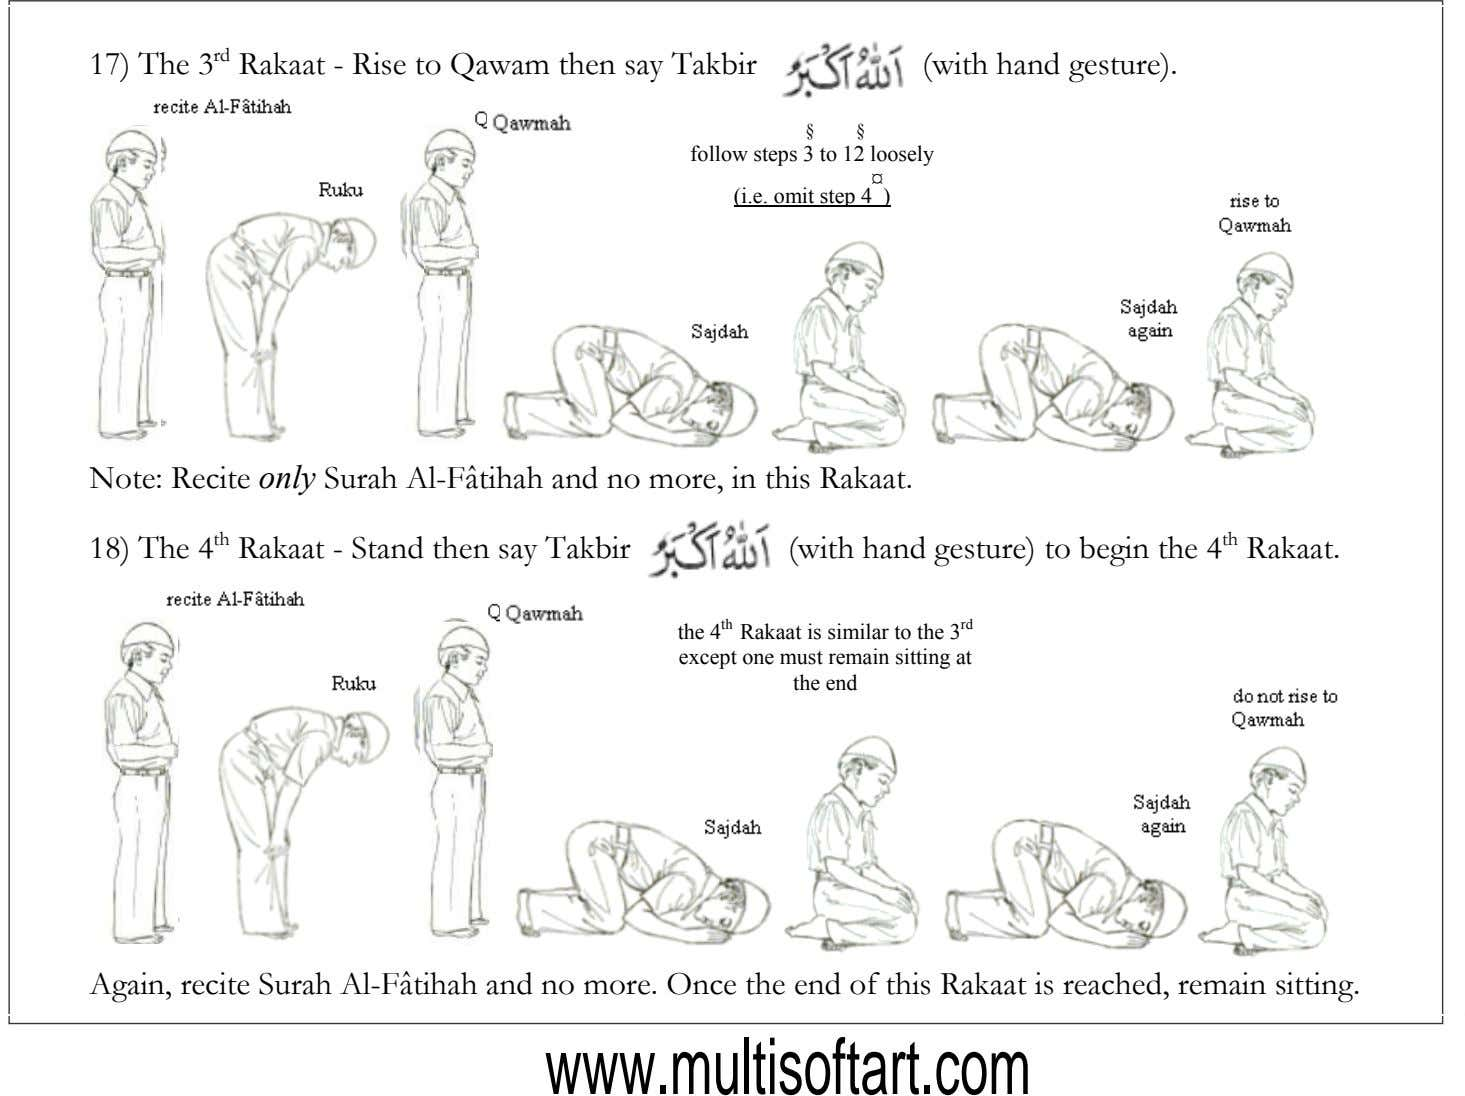 17) The 3 rd Rakaat - Rise to Qawam then say Takbir (with hand gesture). §